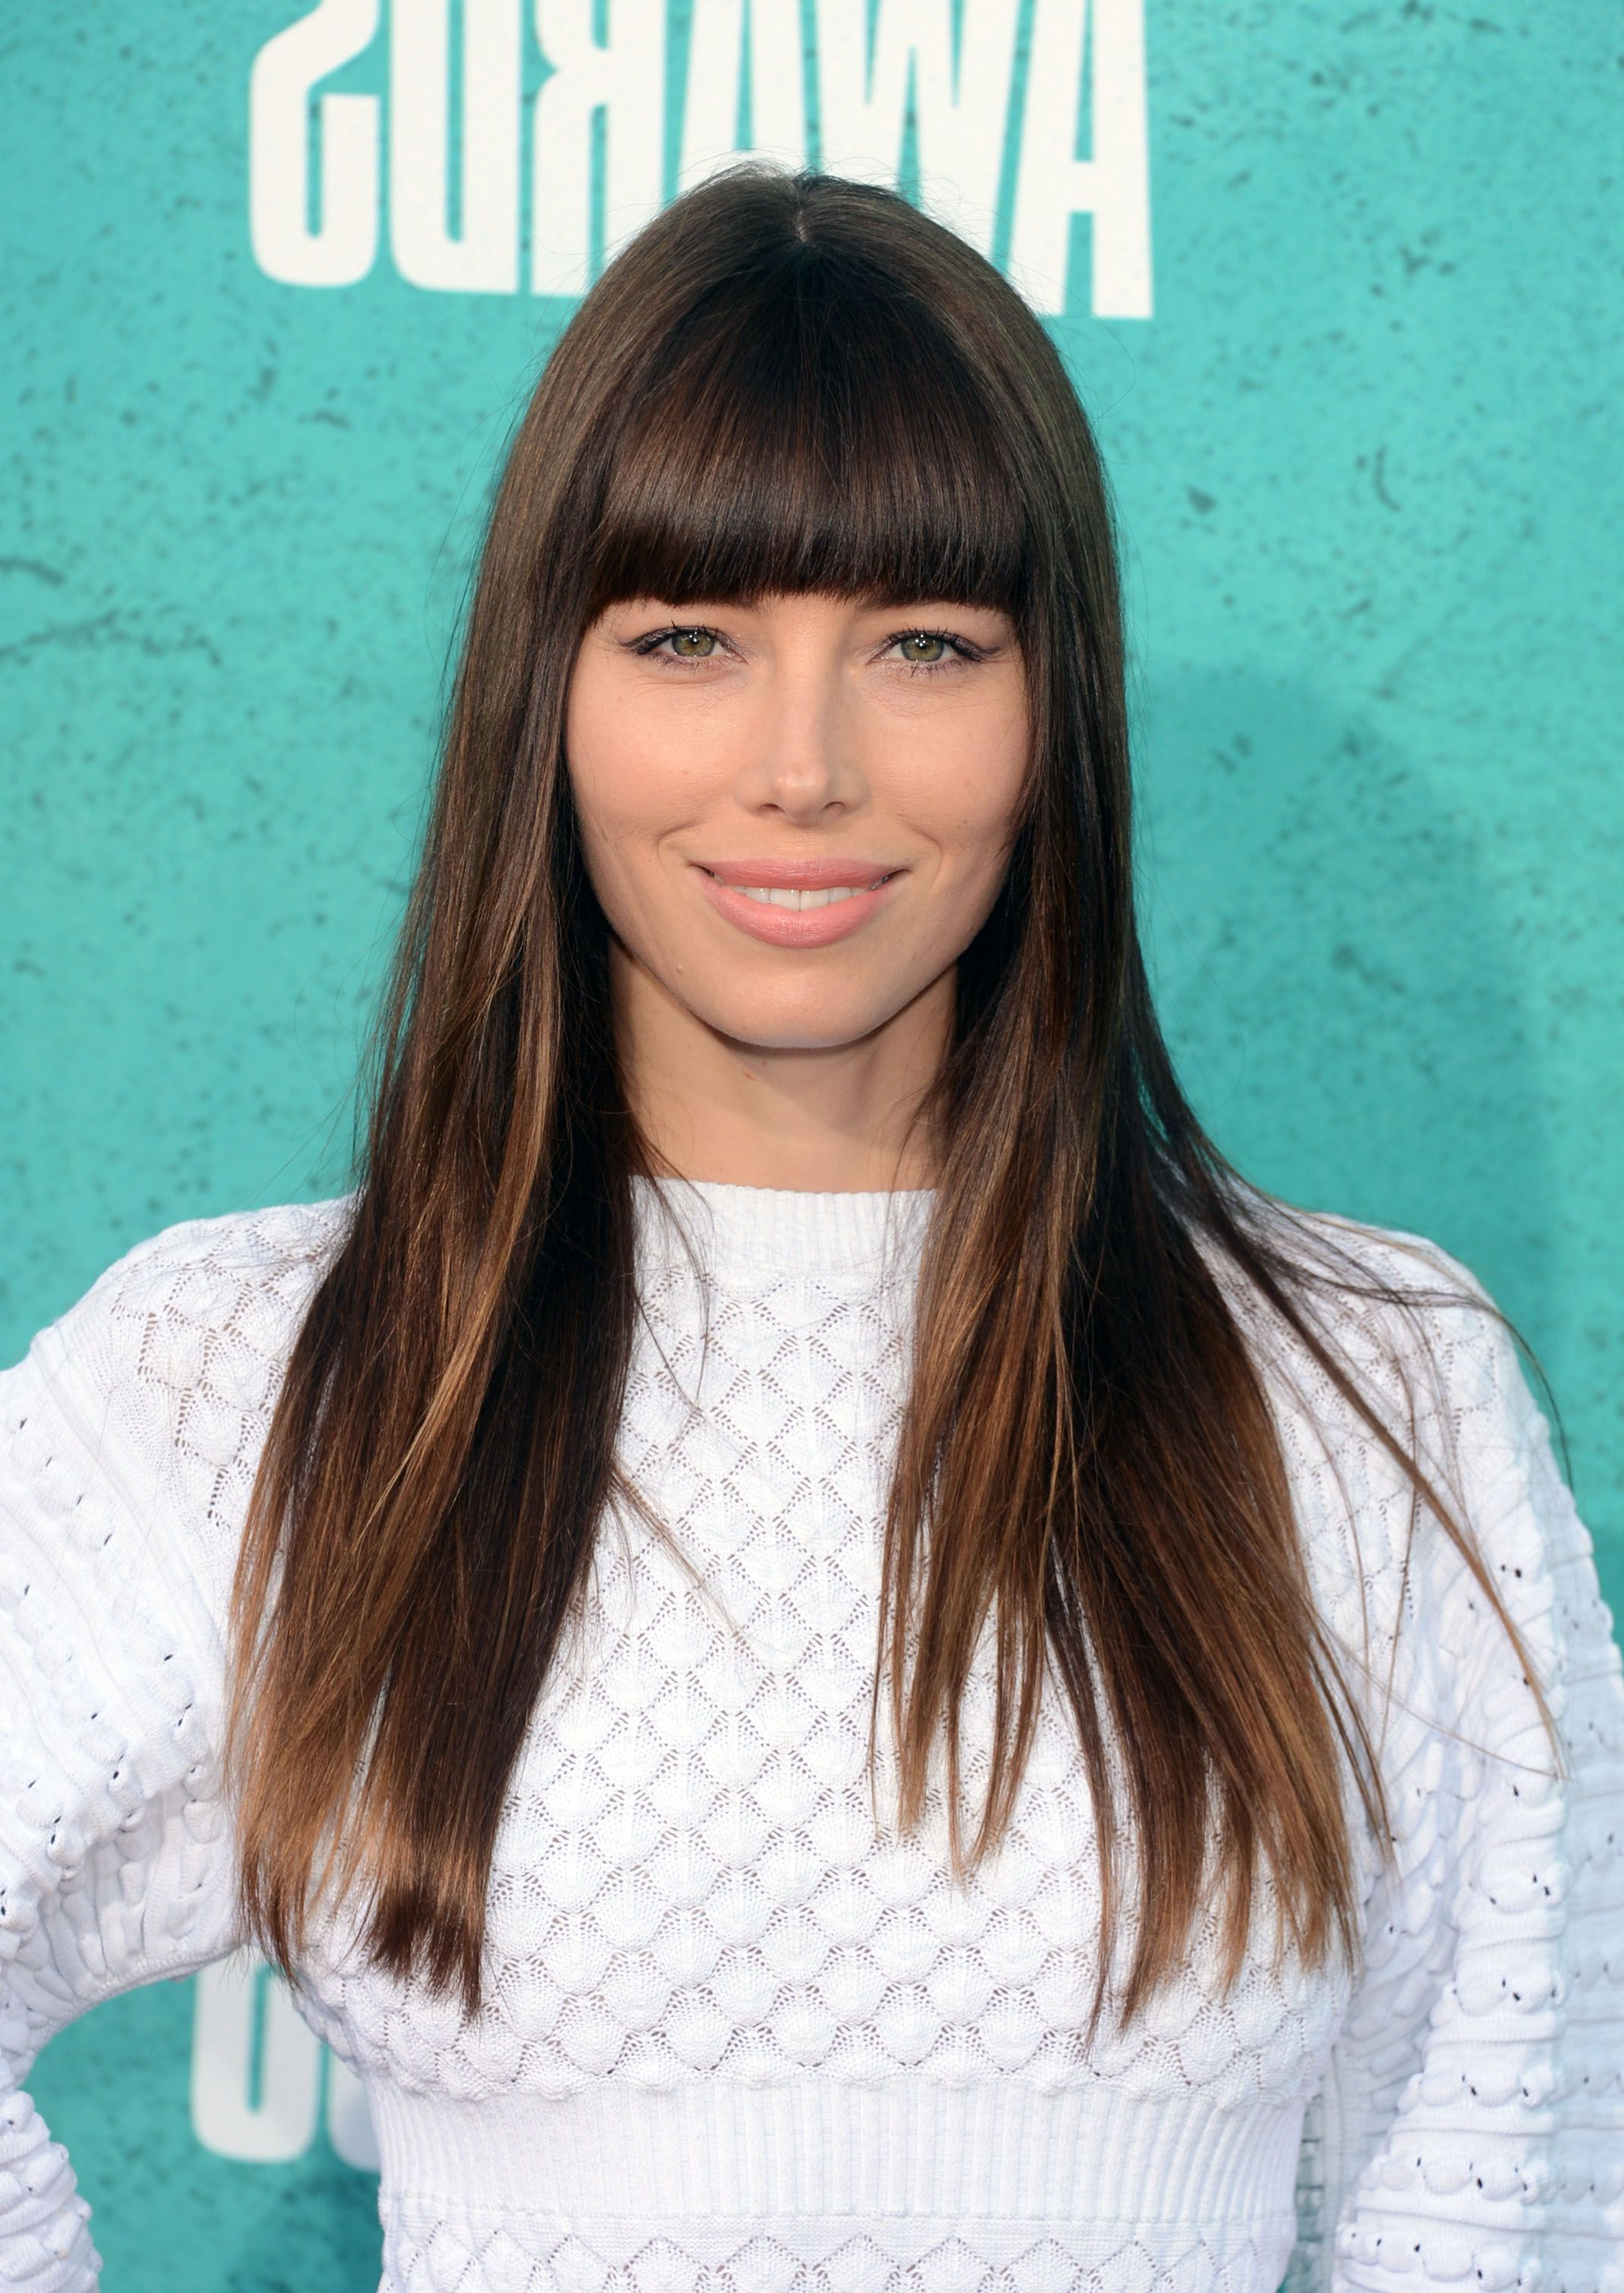 35 Best Hairstyles With Bangs – Photos Of Celebrity Haircuts With Bangs Inside Most Up To Date Long Hair And Blunt Bangs Hairstyles (View 3 of 20)